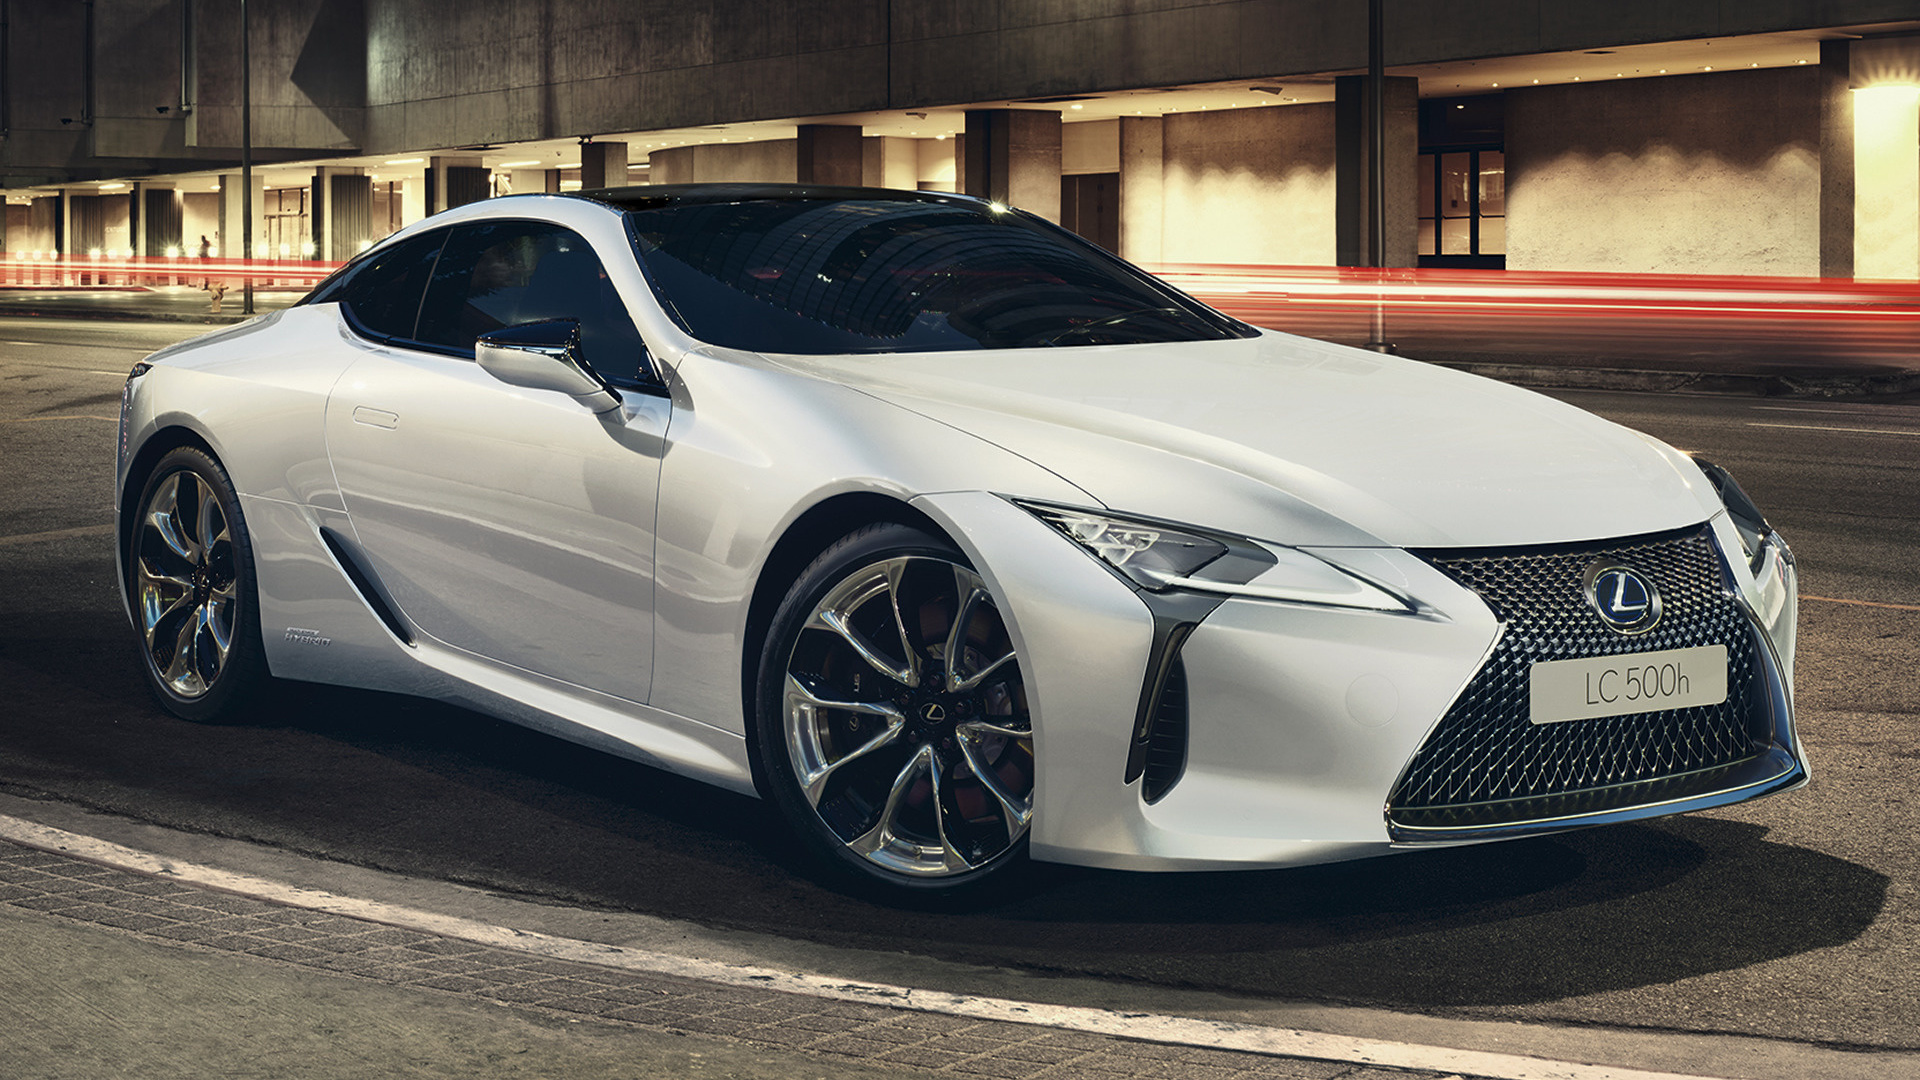 2017 Lexus Lc Hybrid Launch Edition Wallpapers And Hd